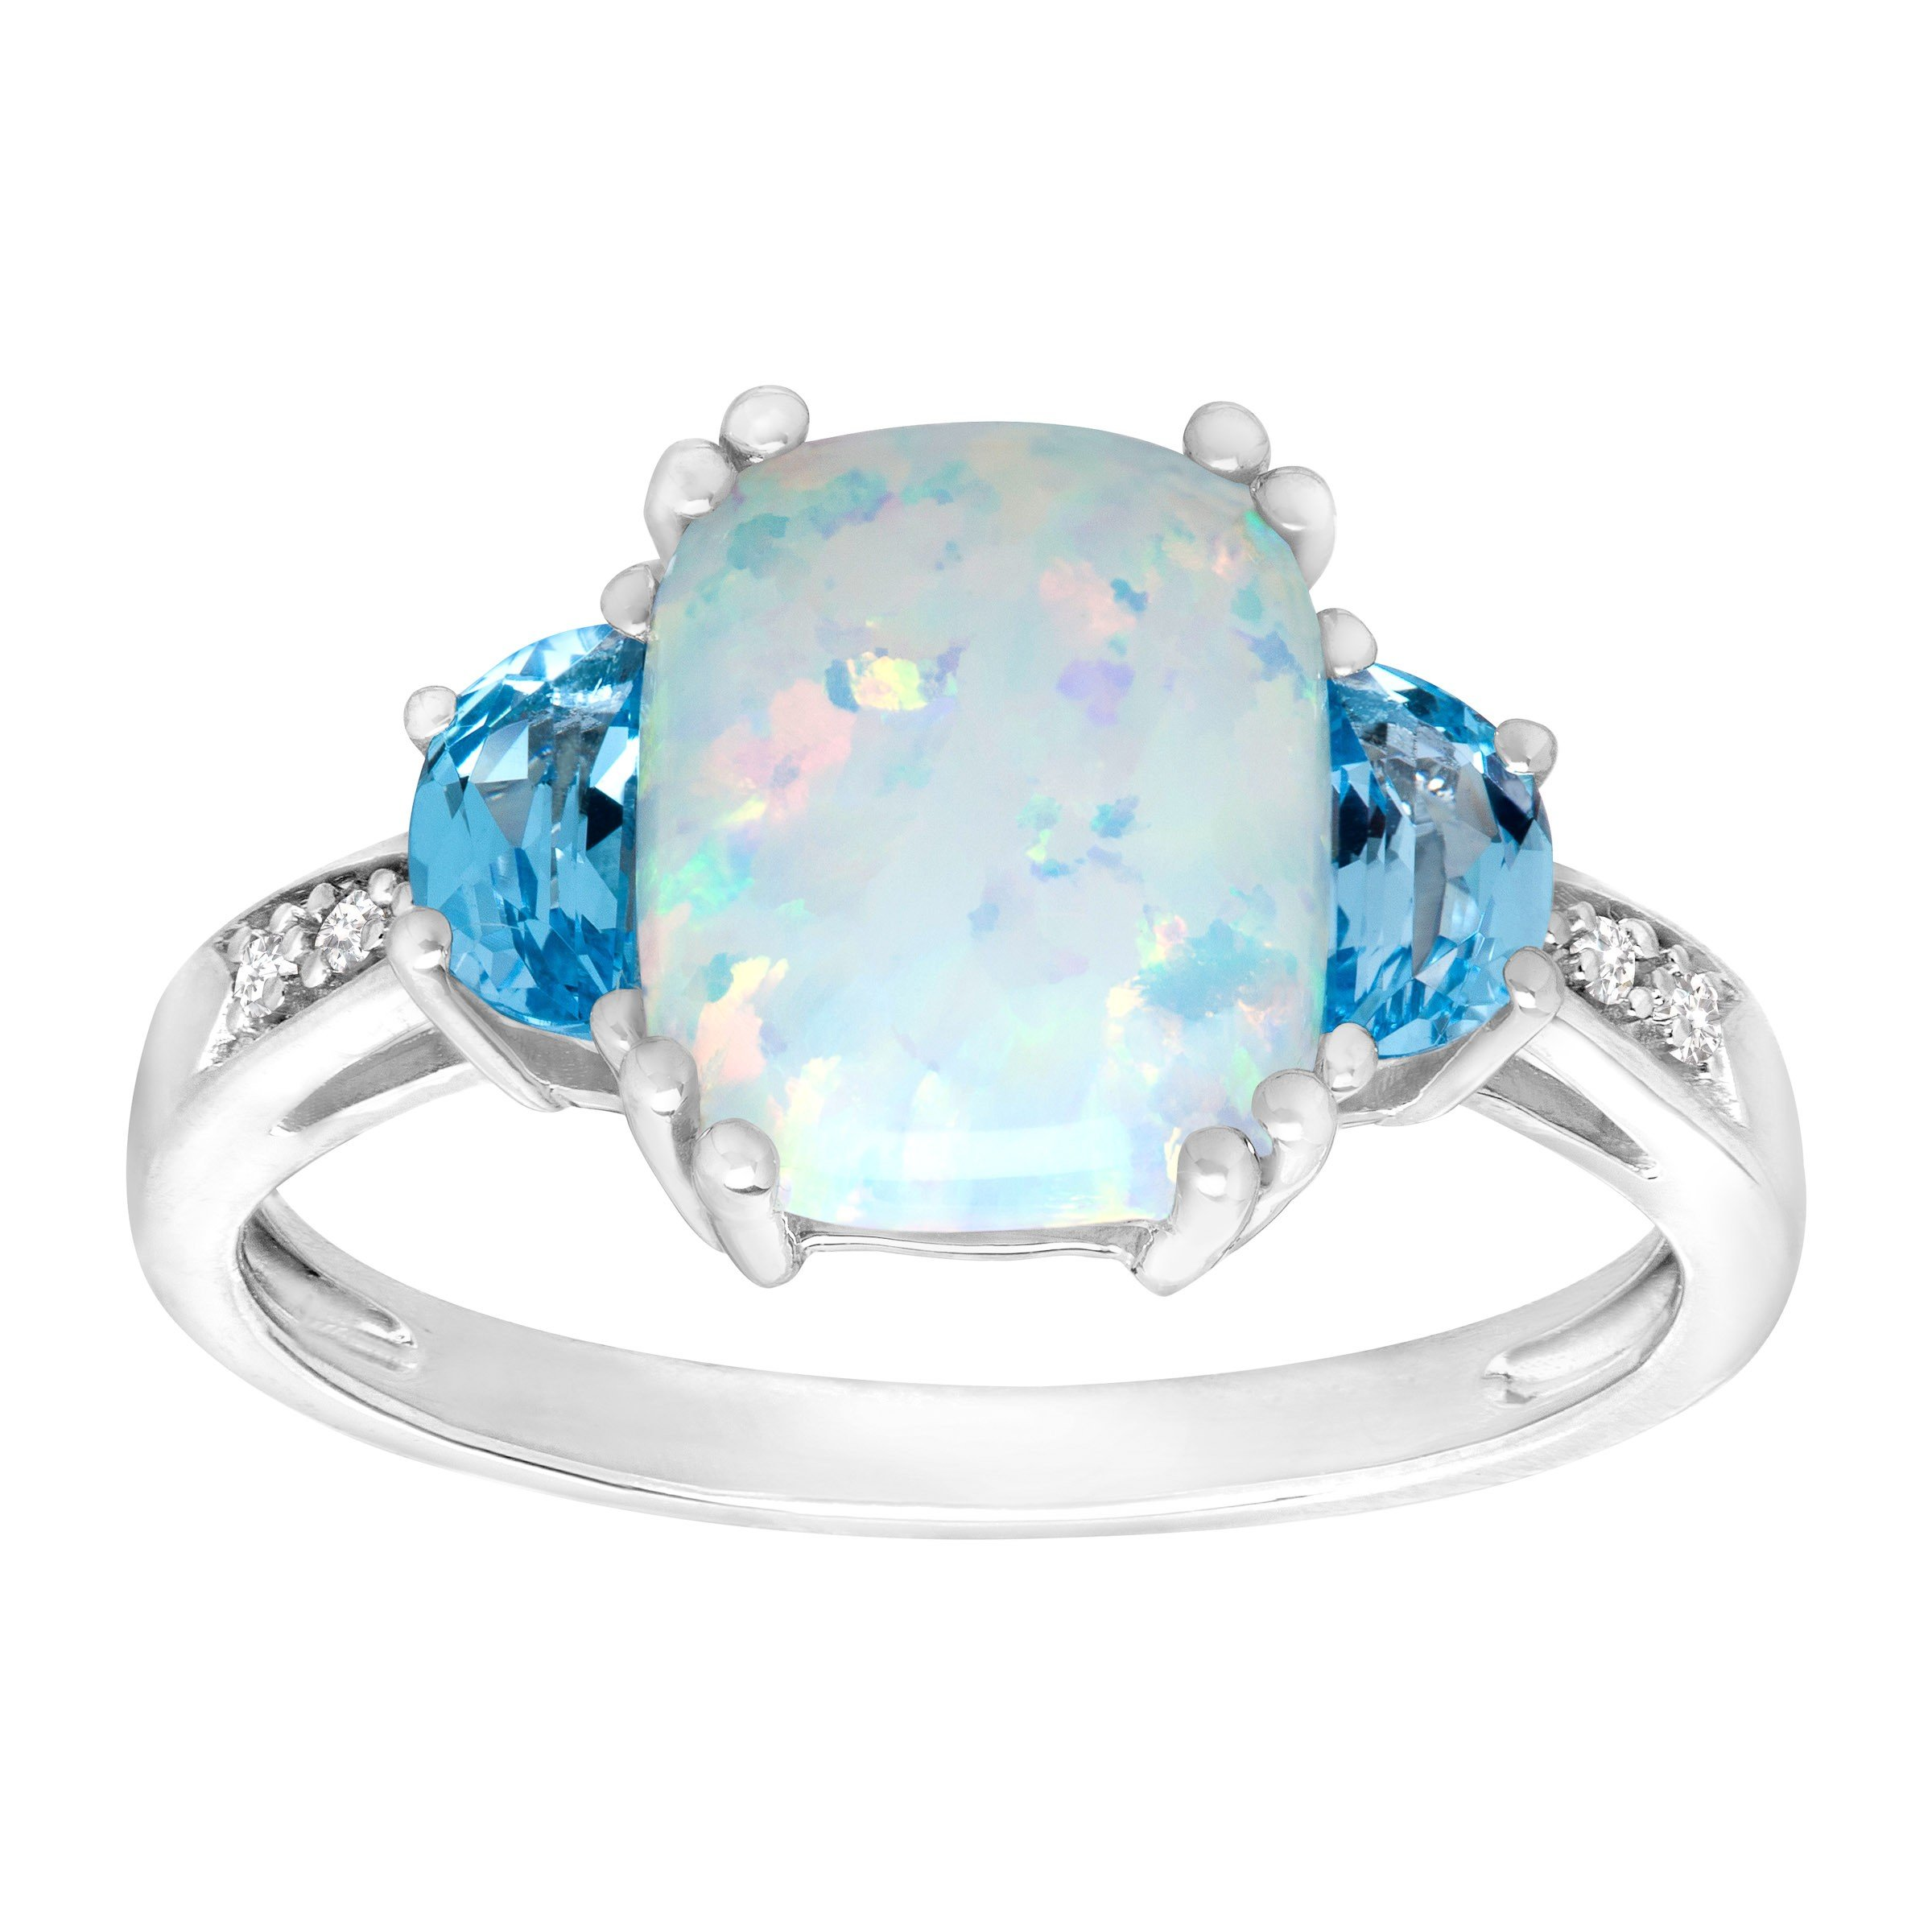 2 3/8 ct Natural Opal & Swiss Blue Topaz Ring with Diamonds in Sterling Silver Size 7